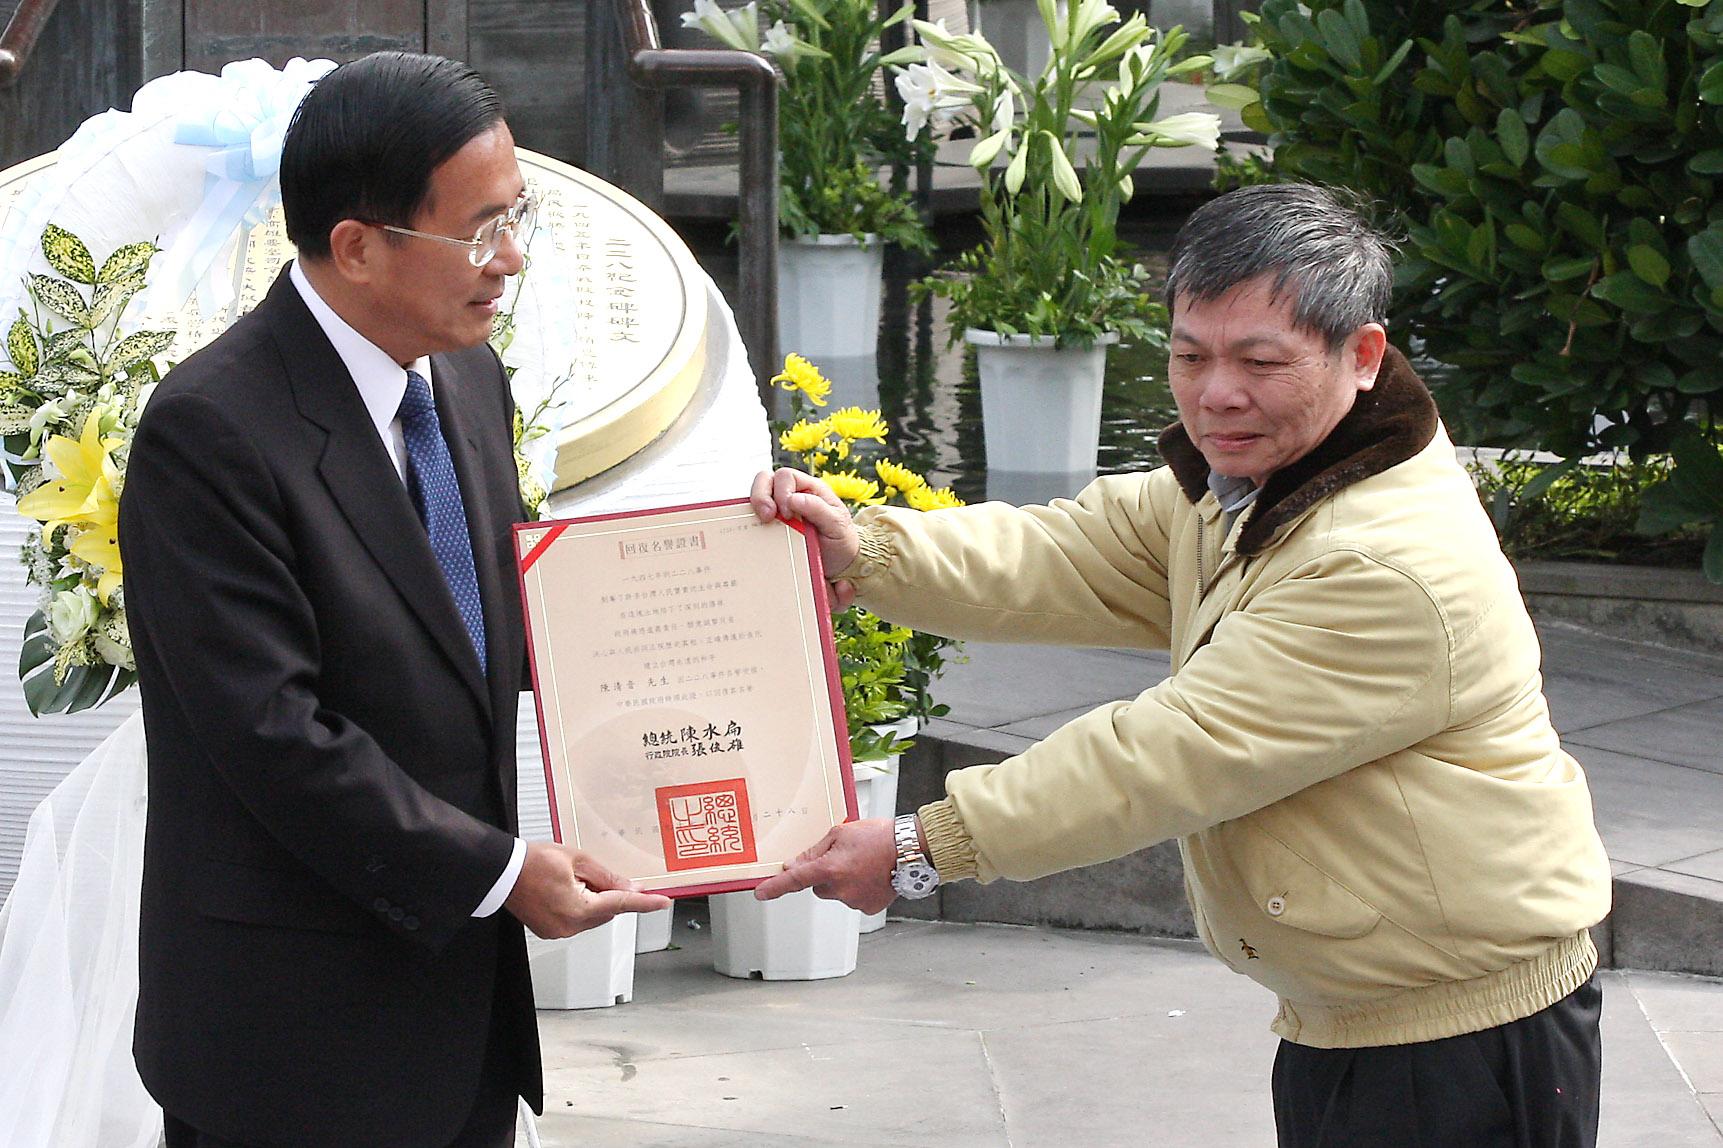 President Chen Shui-bian, left, presents a certificate to 228 victim Chen Chin-yin to formally clear his name, during a ceremony held in Taipei yester...